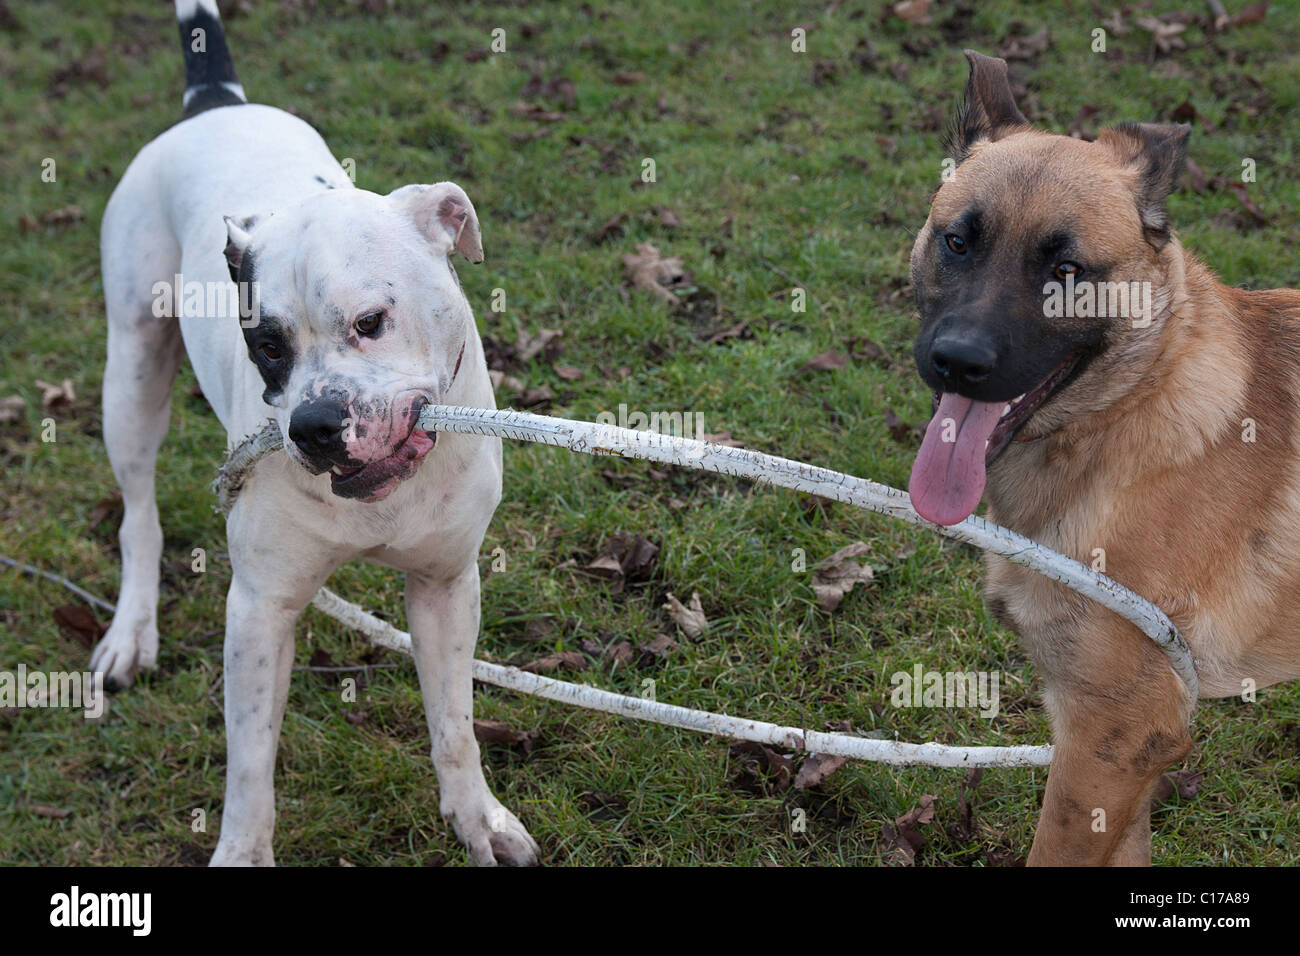 two dogs playing tug of war with hoola hoop - Stock Image